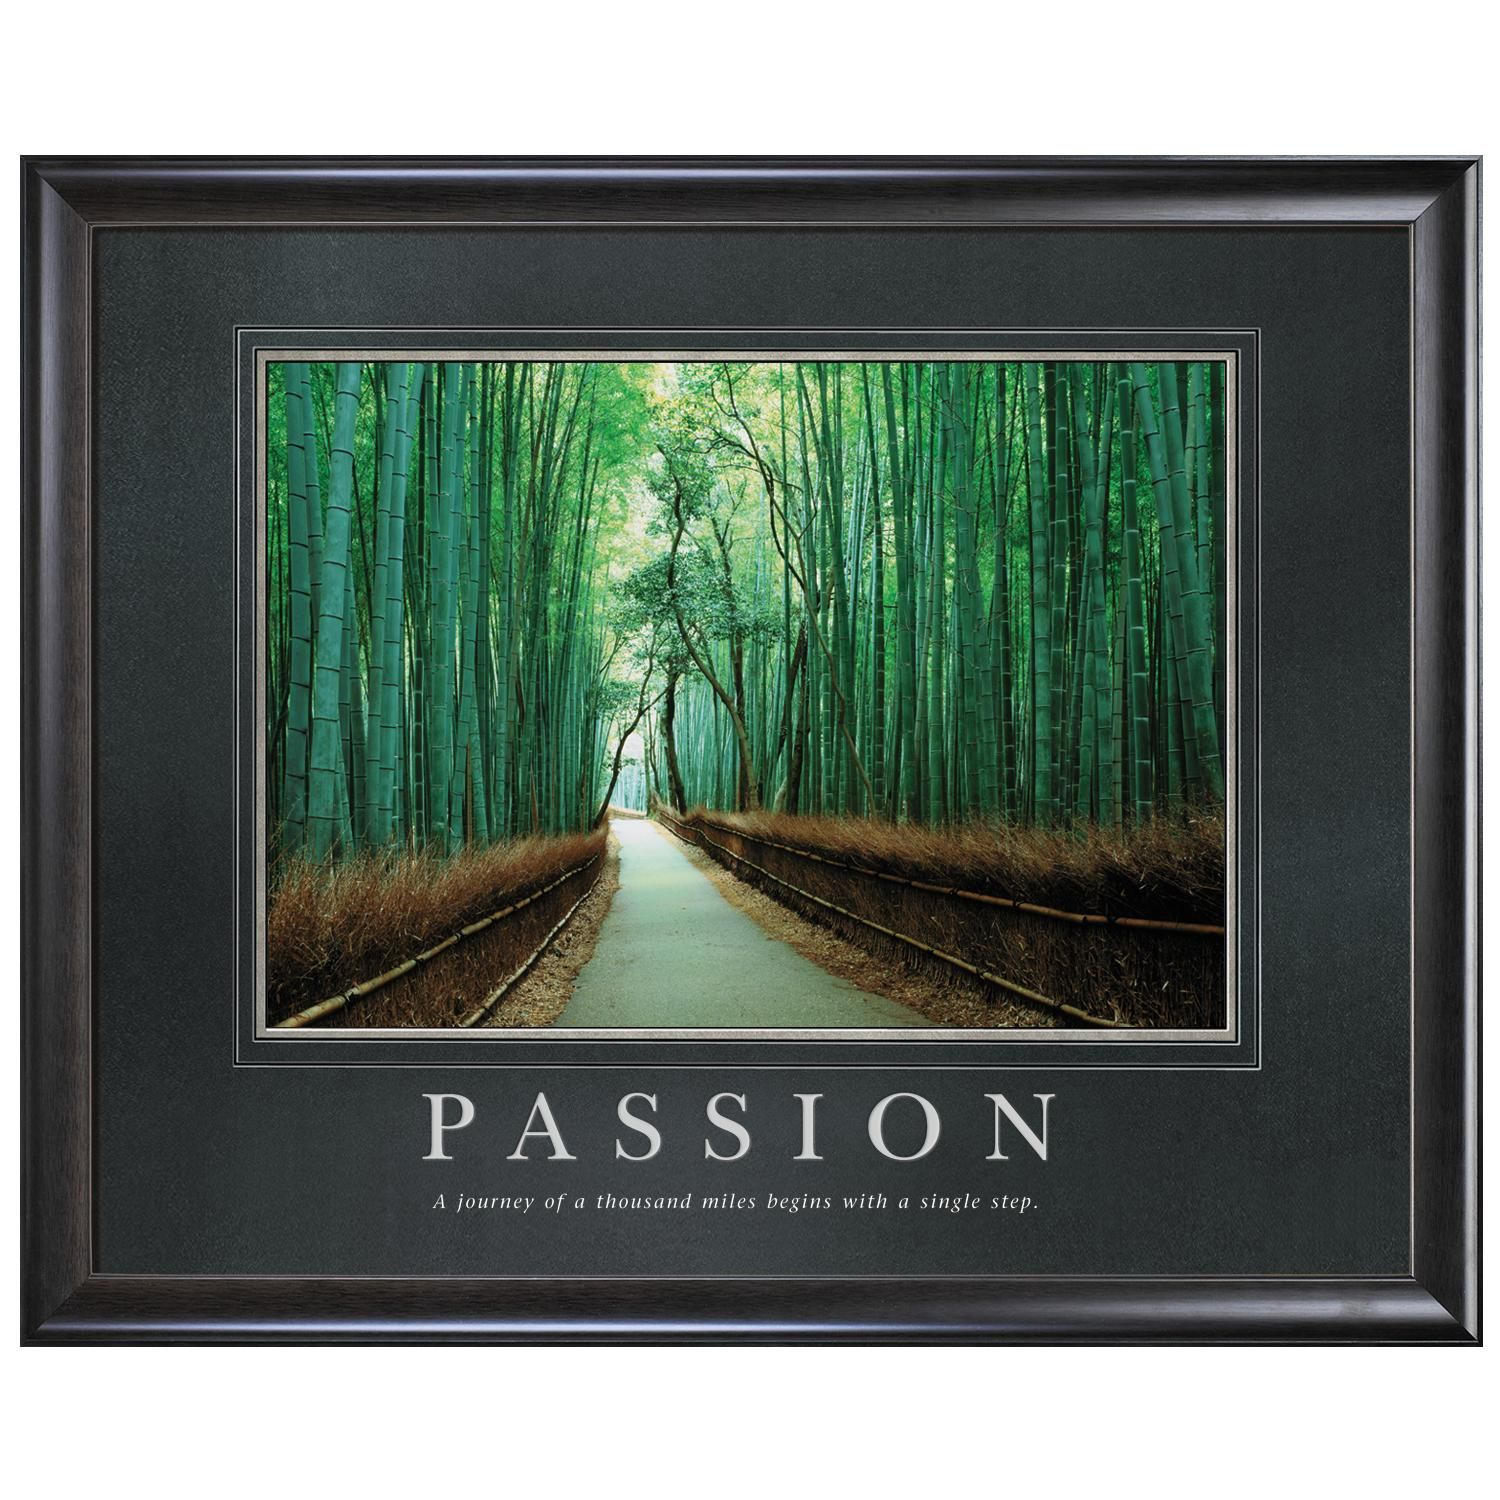 office inspirational posters. Classic Motivational Posters By Successories - Passion Bamboo Path Poster Office Inspirational